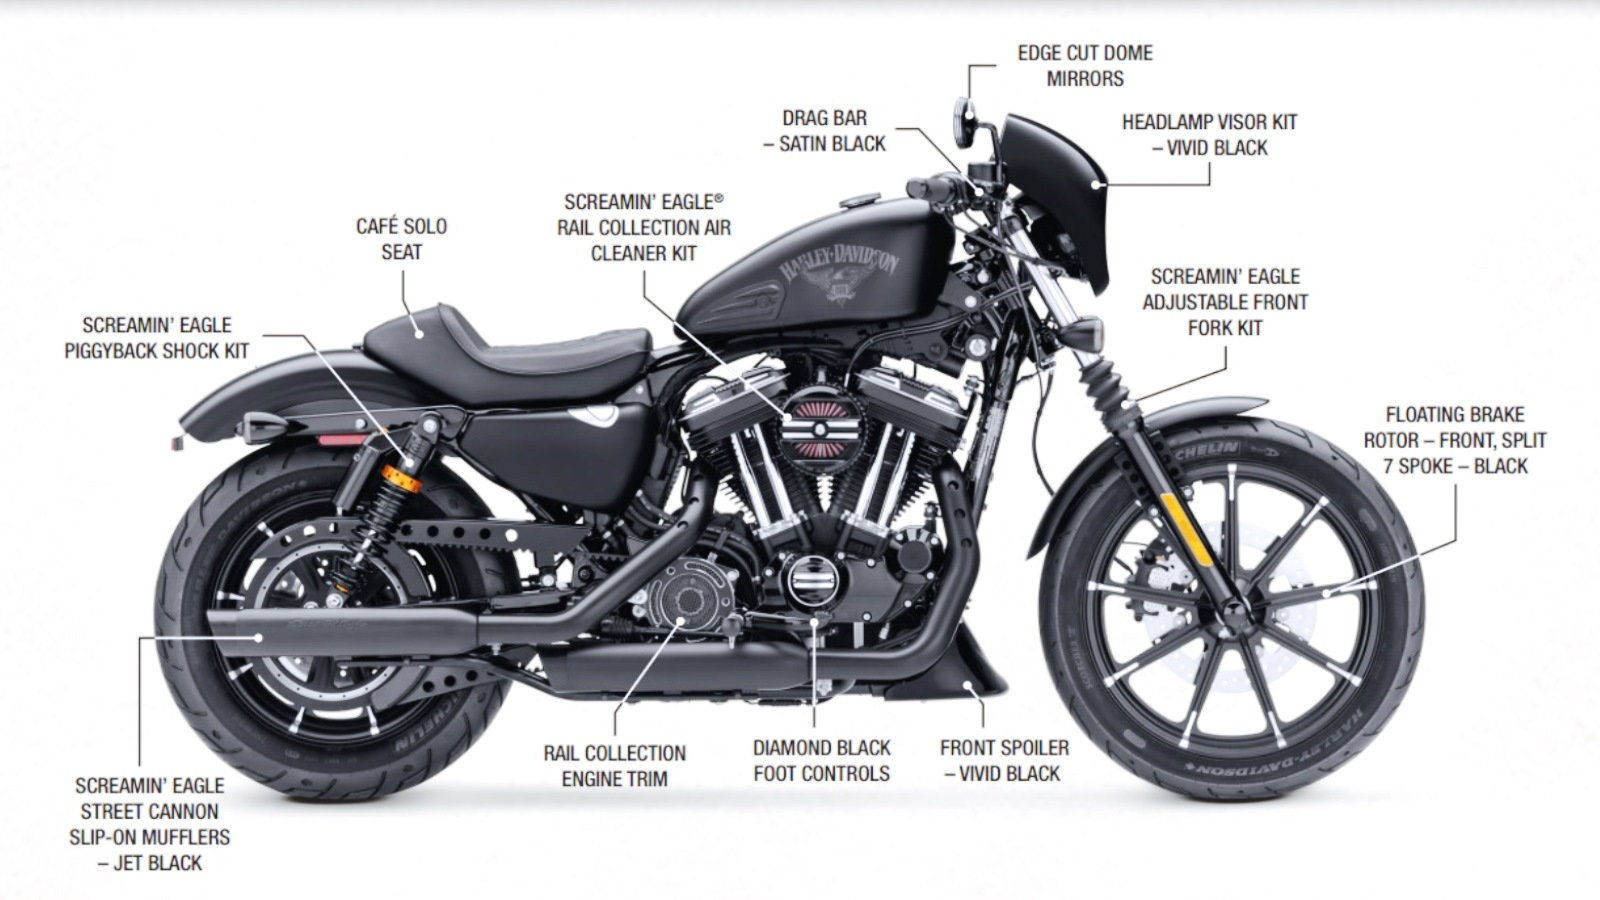 [DICX_8578] 2011 Harley Road King Wiring Diagram For